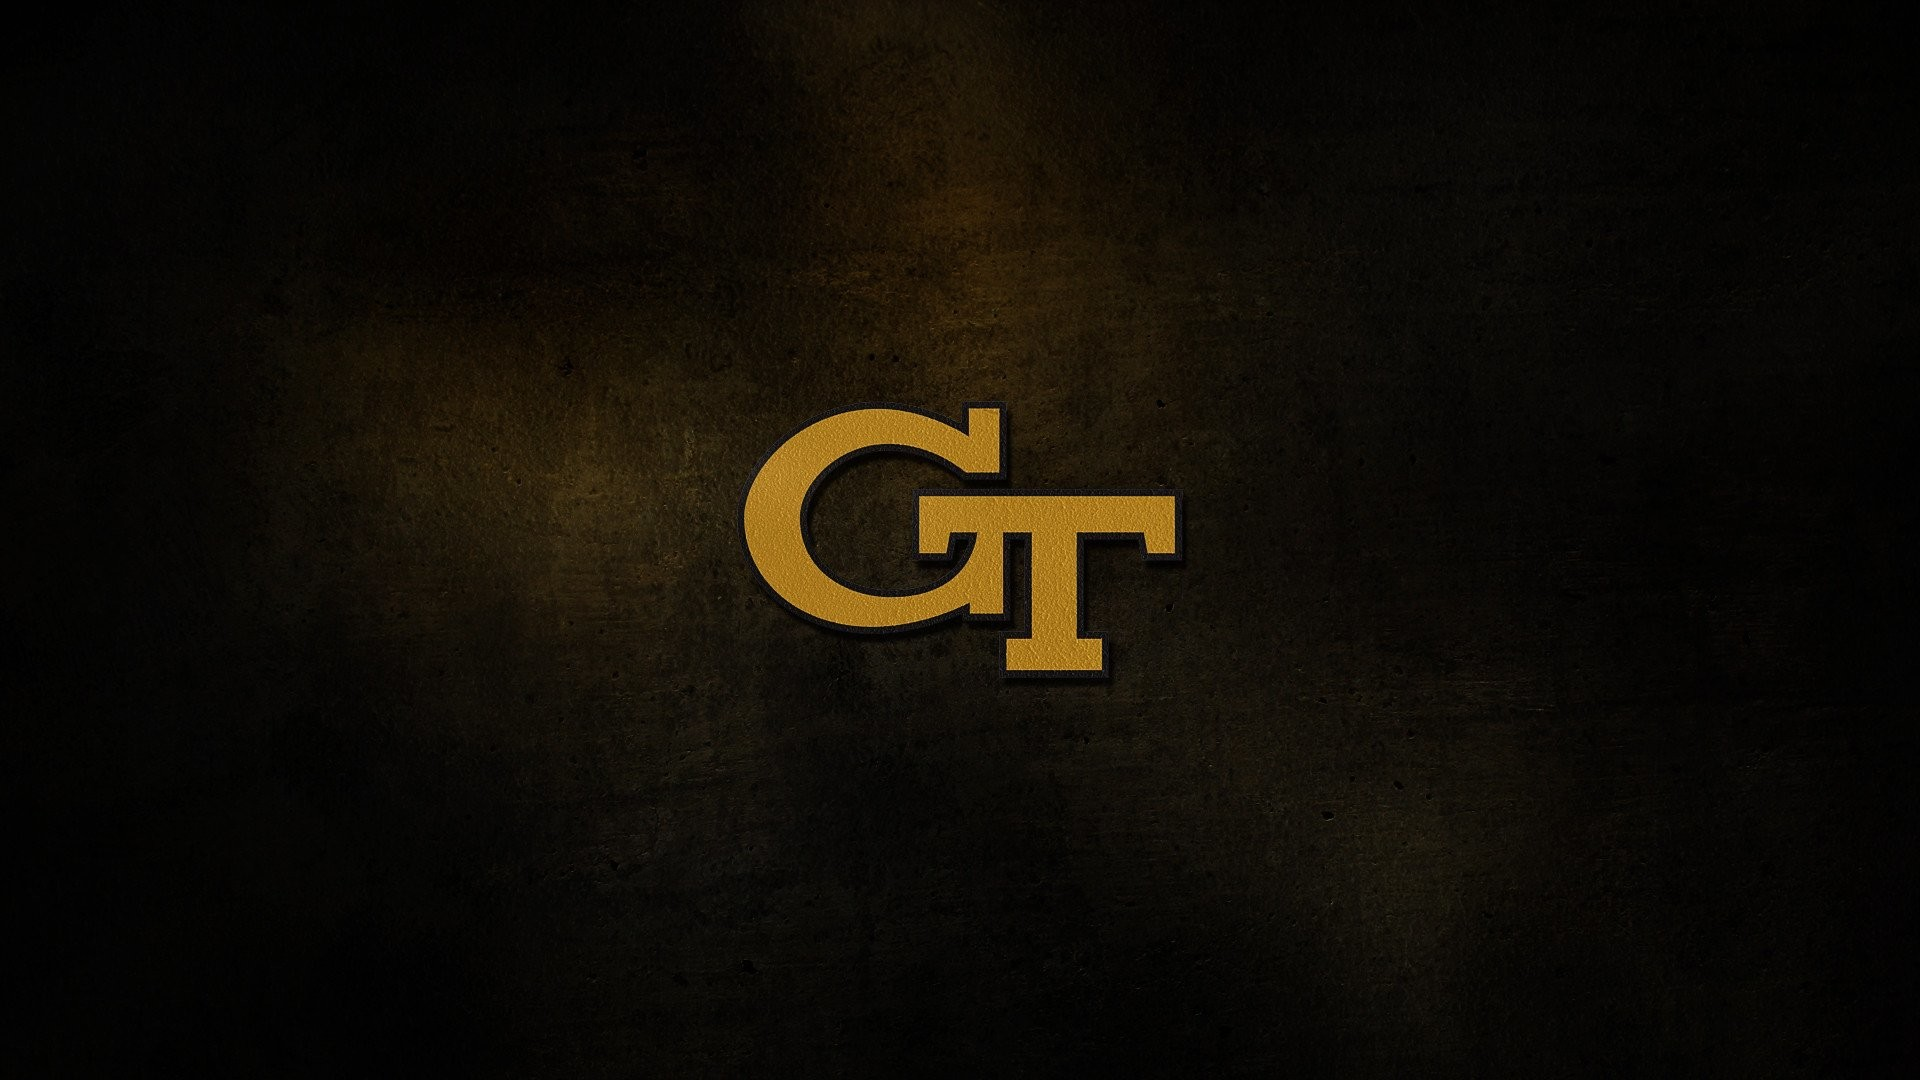 1920x1080 Georgia Tech Live Wallpaper HD - Android Apps on Google Play